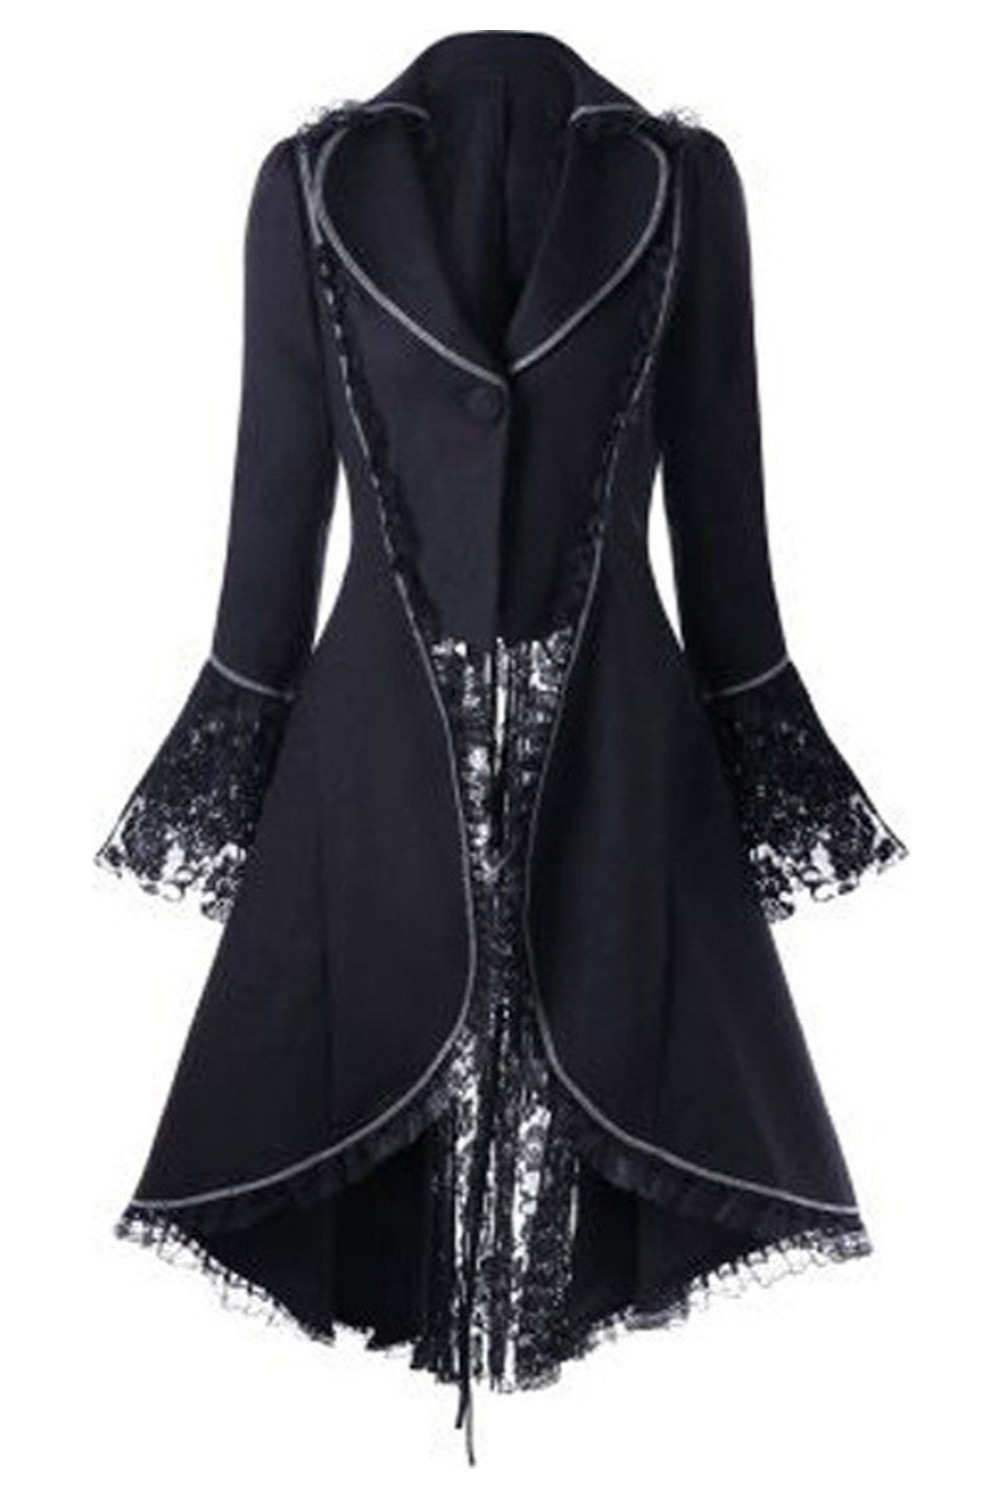 Womens Gothic Steampunk Corset Halloween Costume Coat Victorian Tailcoat Jacket